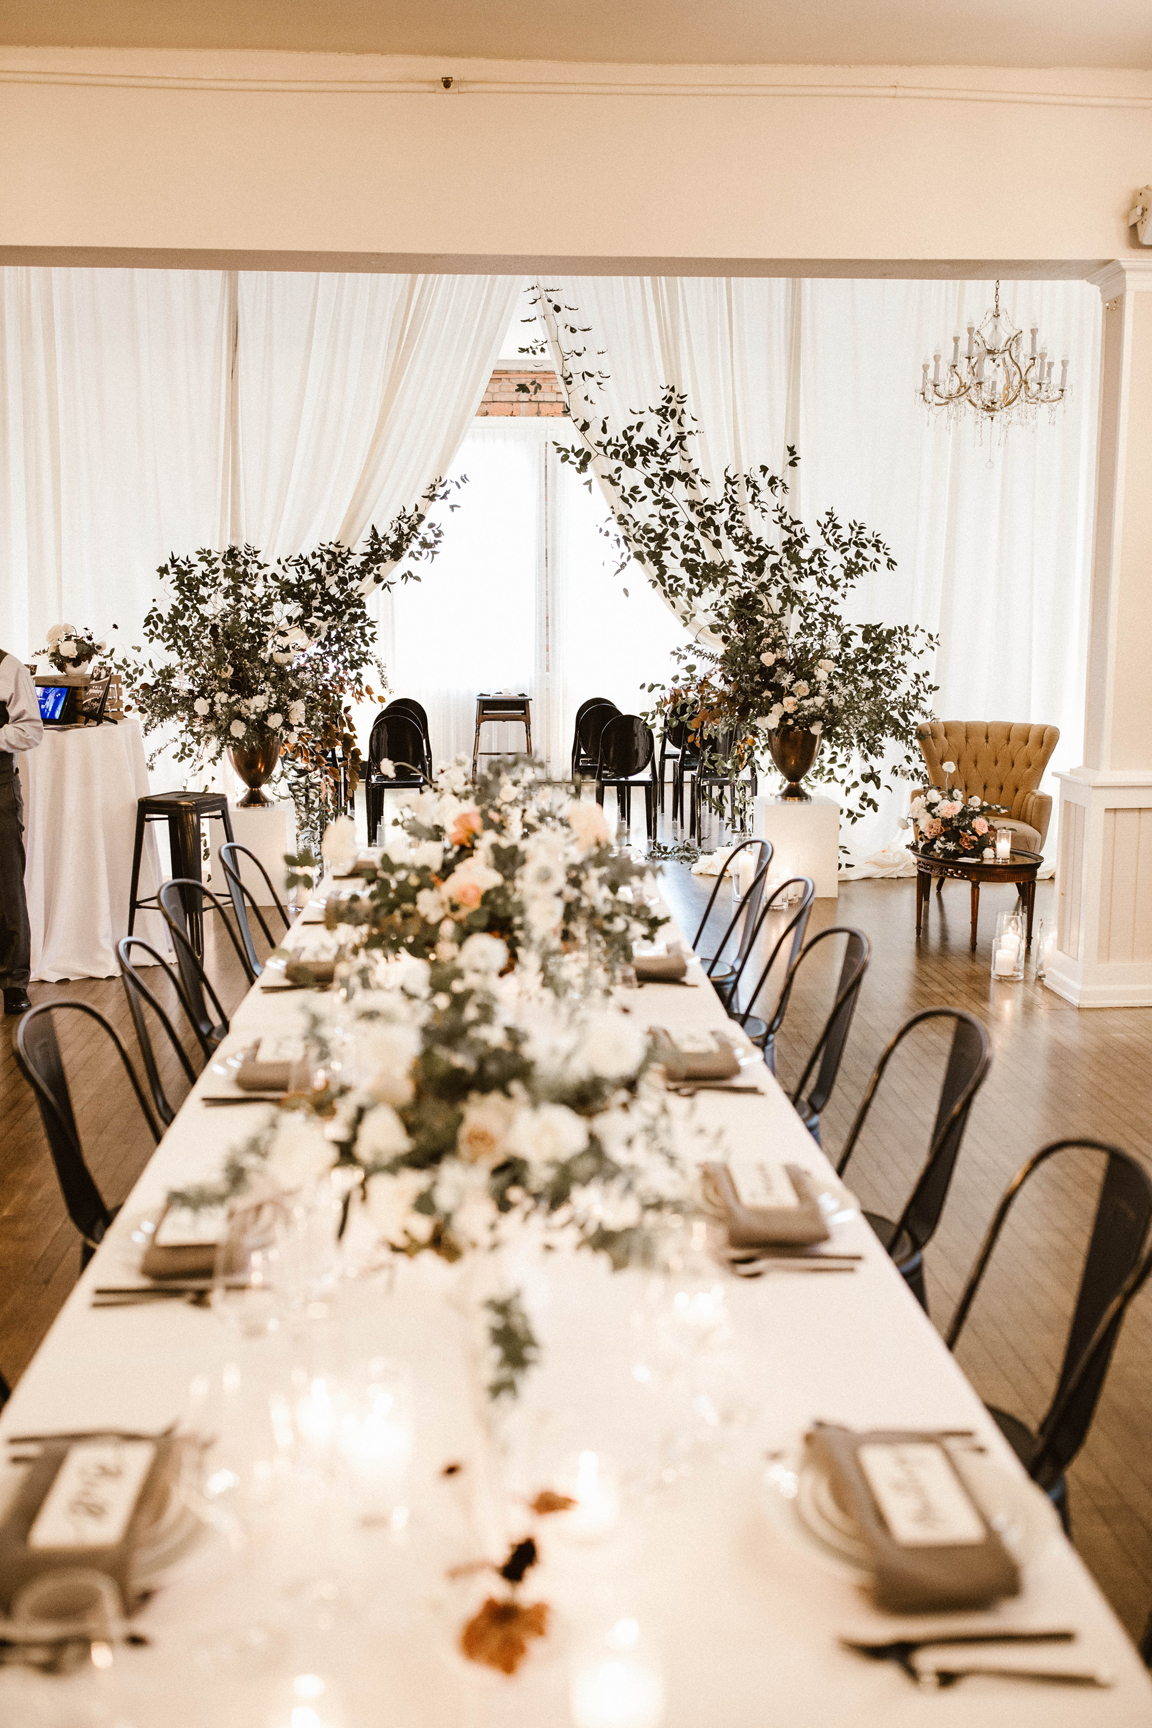 Hollywood+Anderson+House_Woodinville_2017_Weddings+In+Woodinville183.jpg